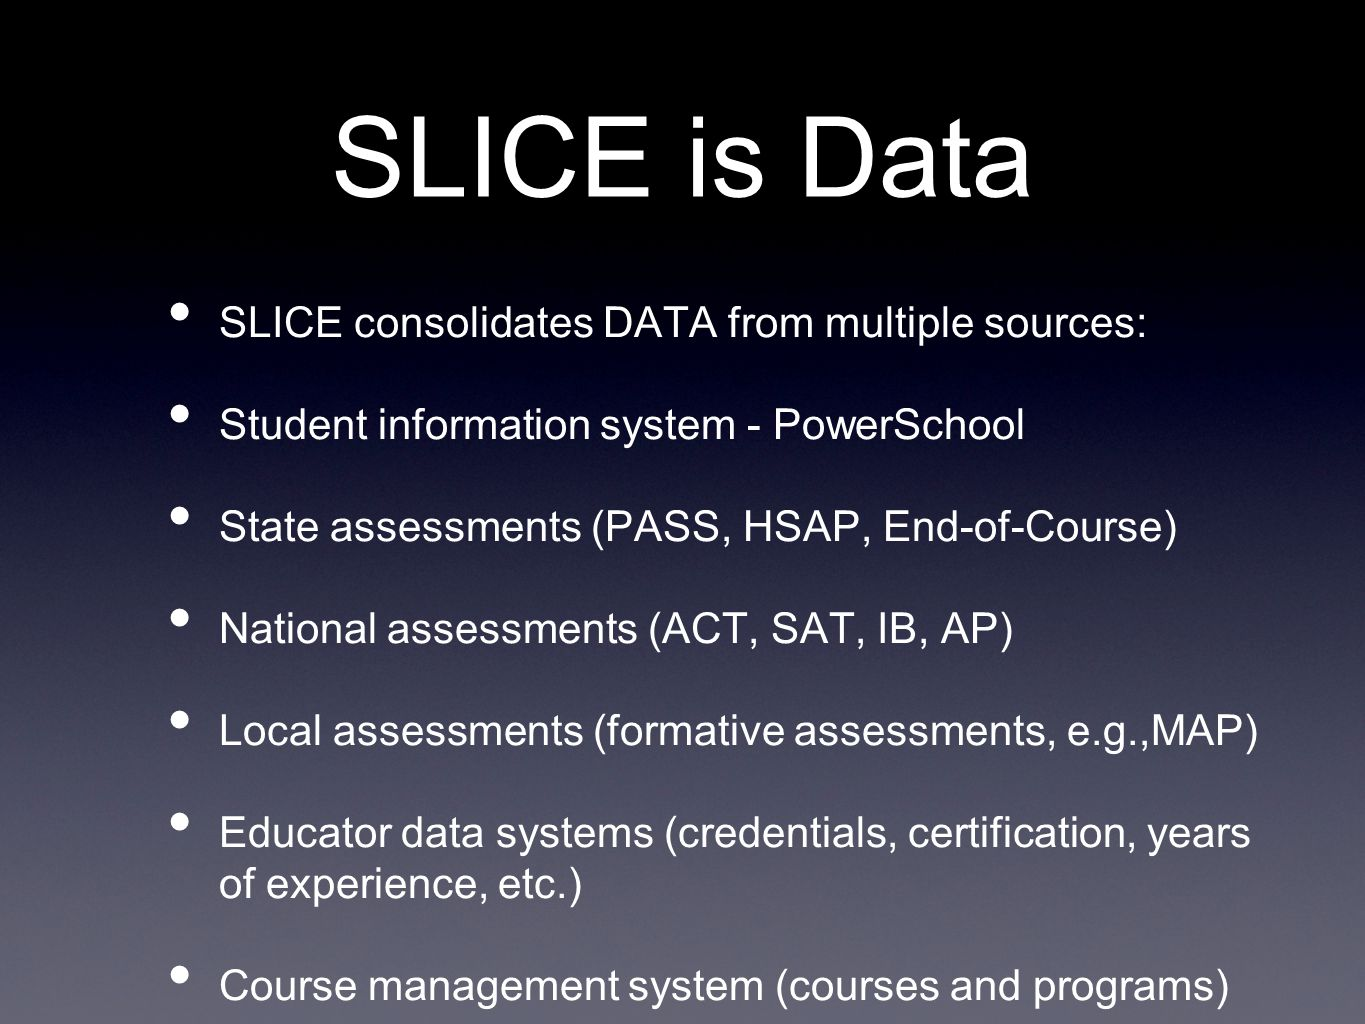 SLICE is Data SLICE consolidates DATA from multiple sources: Student information system - PowerSchool State assessments (PASS, HSAP, End-of-Course) National assessments (ACT, SAT, IB, AP) Local assessments (formative assessments, e.g.,MAP) Educator data systems (credentials, certification, years of experience, etc.) Course management system (courses and programs)